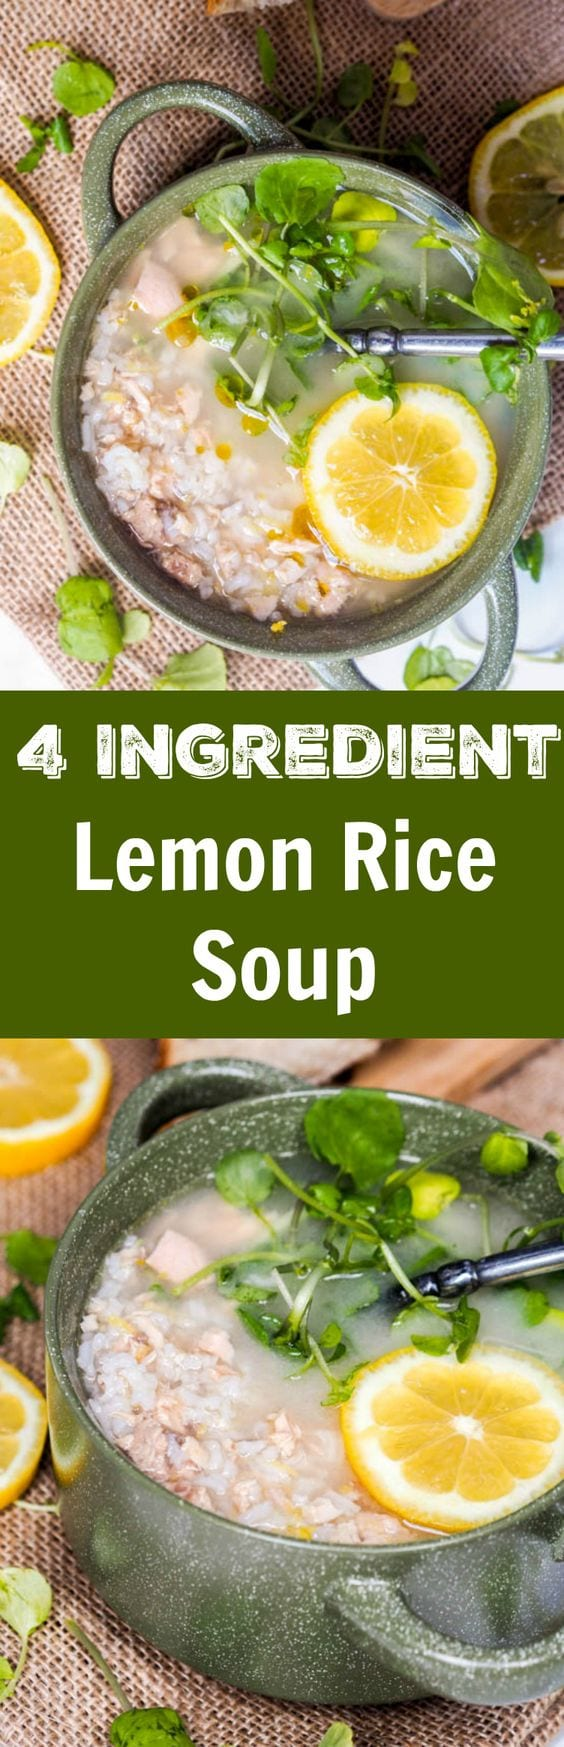 Lemon rice soup comes together in less than 30 minutes and only requires 4 ingredients + a secret ingredient to make a super flavorful quick home made broth. A healthy gluten-free and dairy-free lunch doesn't get easier than this. #soup #rice #healthy #fish #easy